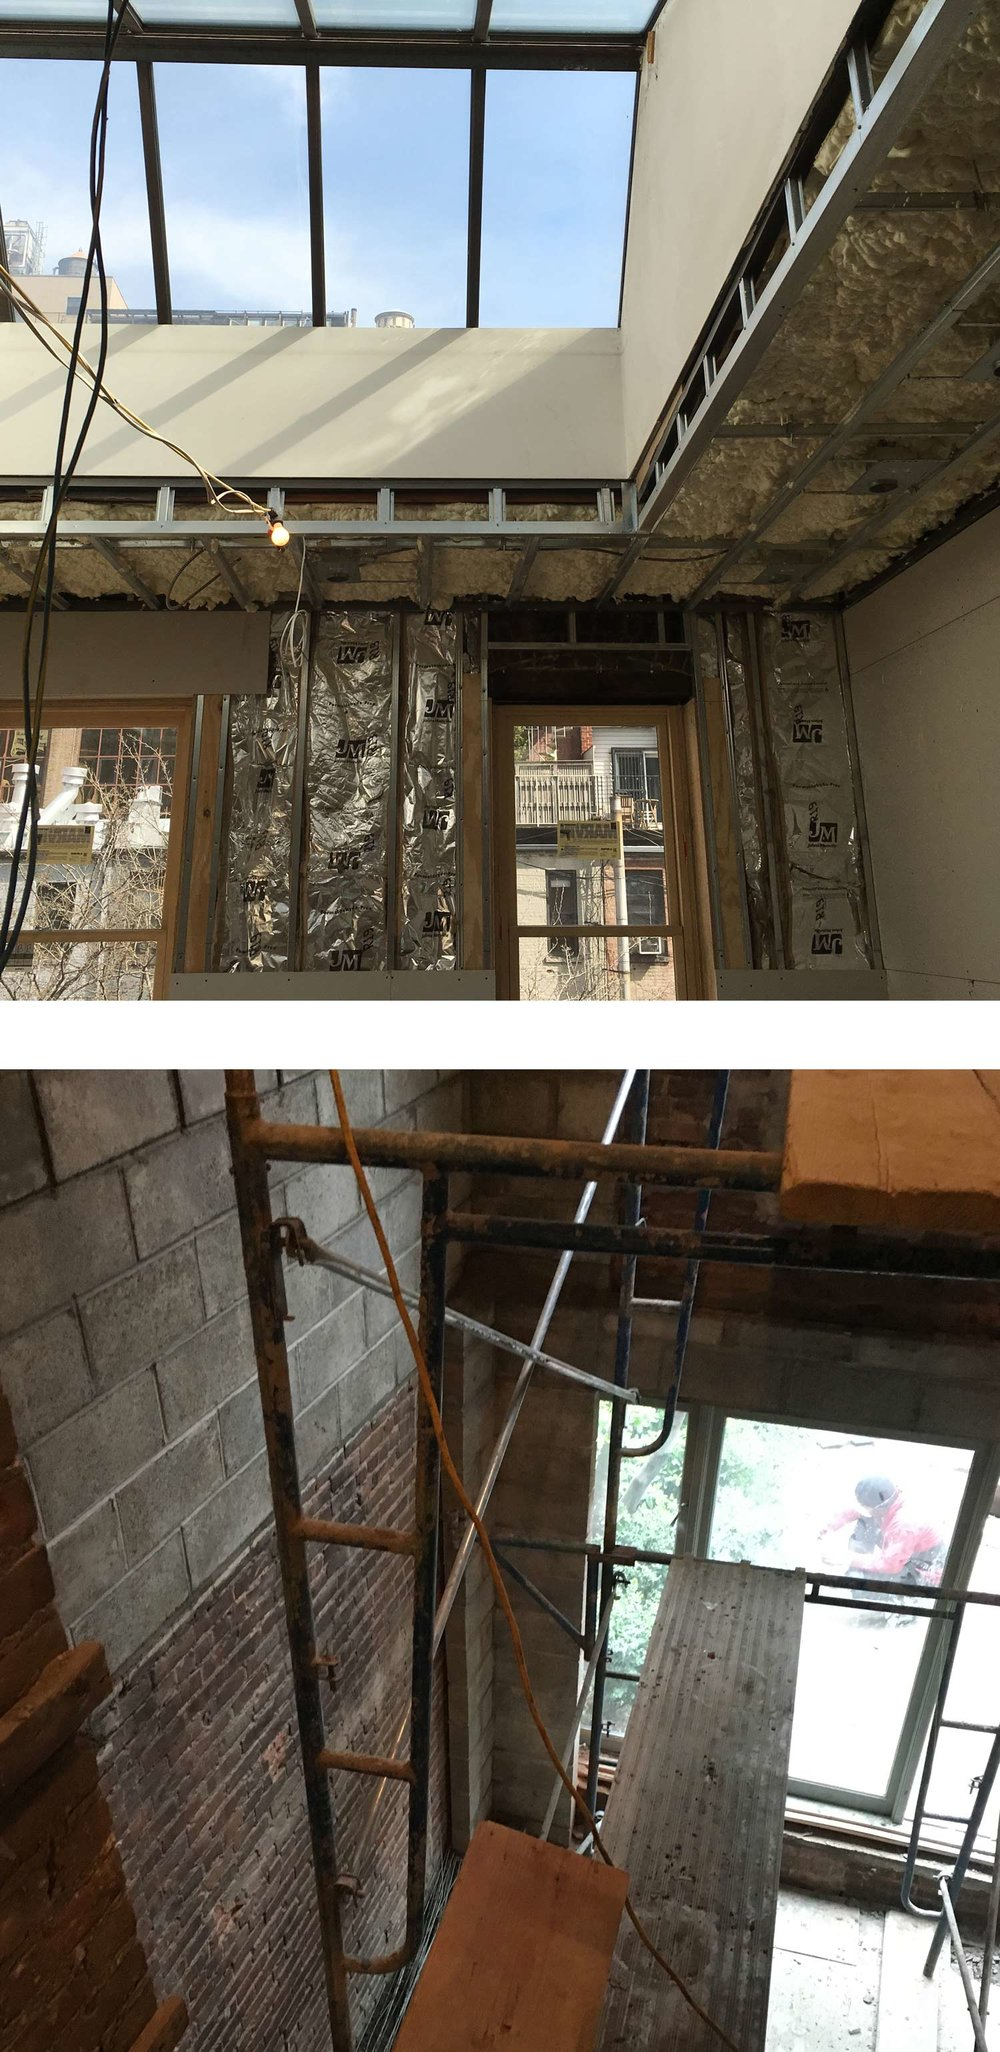 New York Townhouse Renovation - Photos during construction